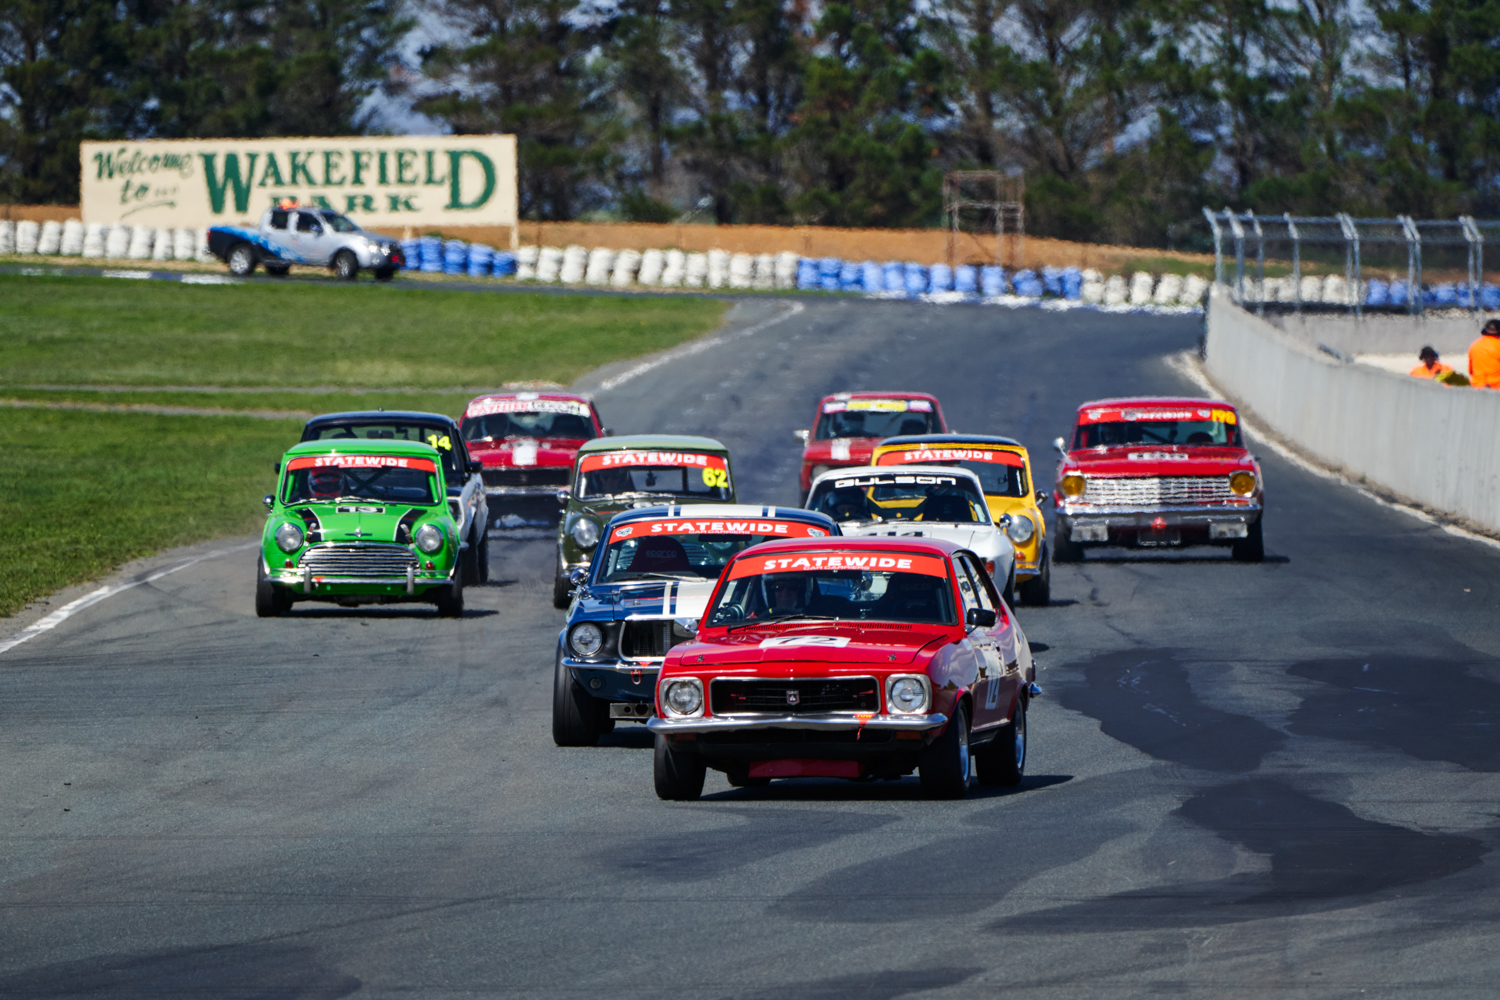 Paul Tierney leading the Group N pack in his GTR XU-1. Seth Reinhardt Photo. Seth Reinhardt